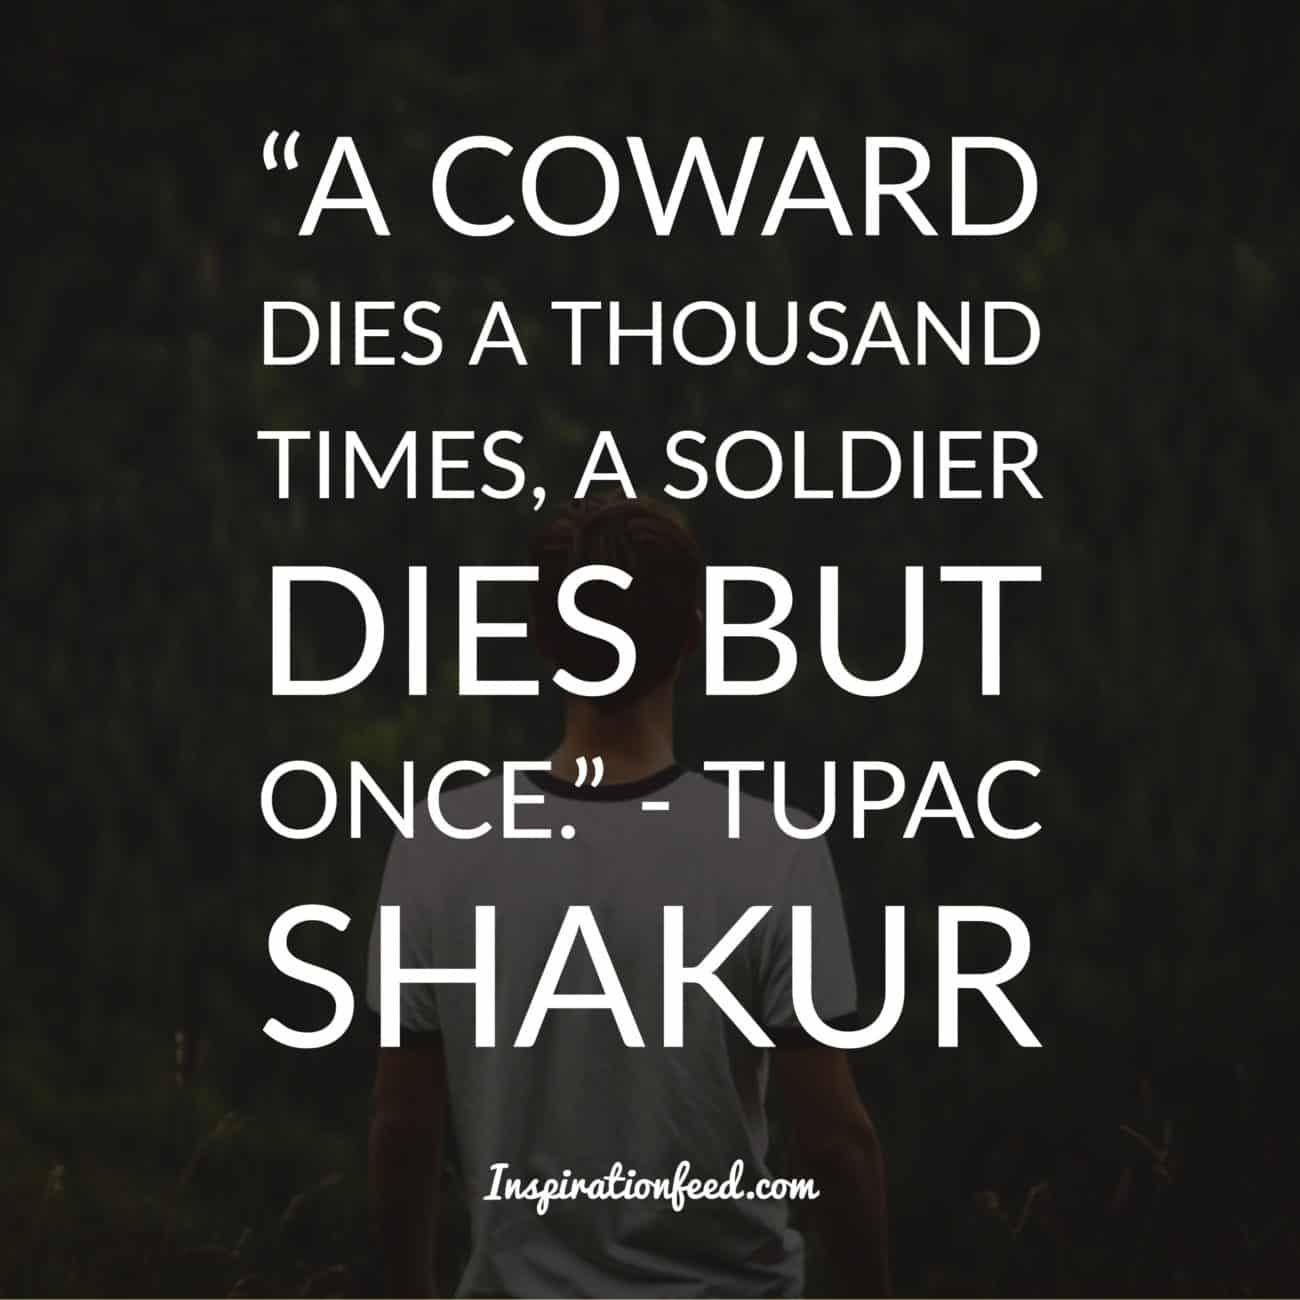 30 Best Tupac Shakur Quotes On Life Love People Tupac Shakur